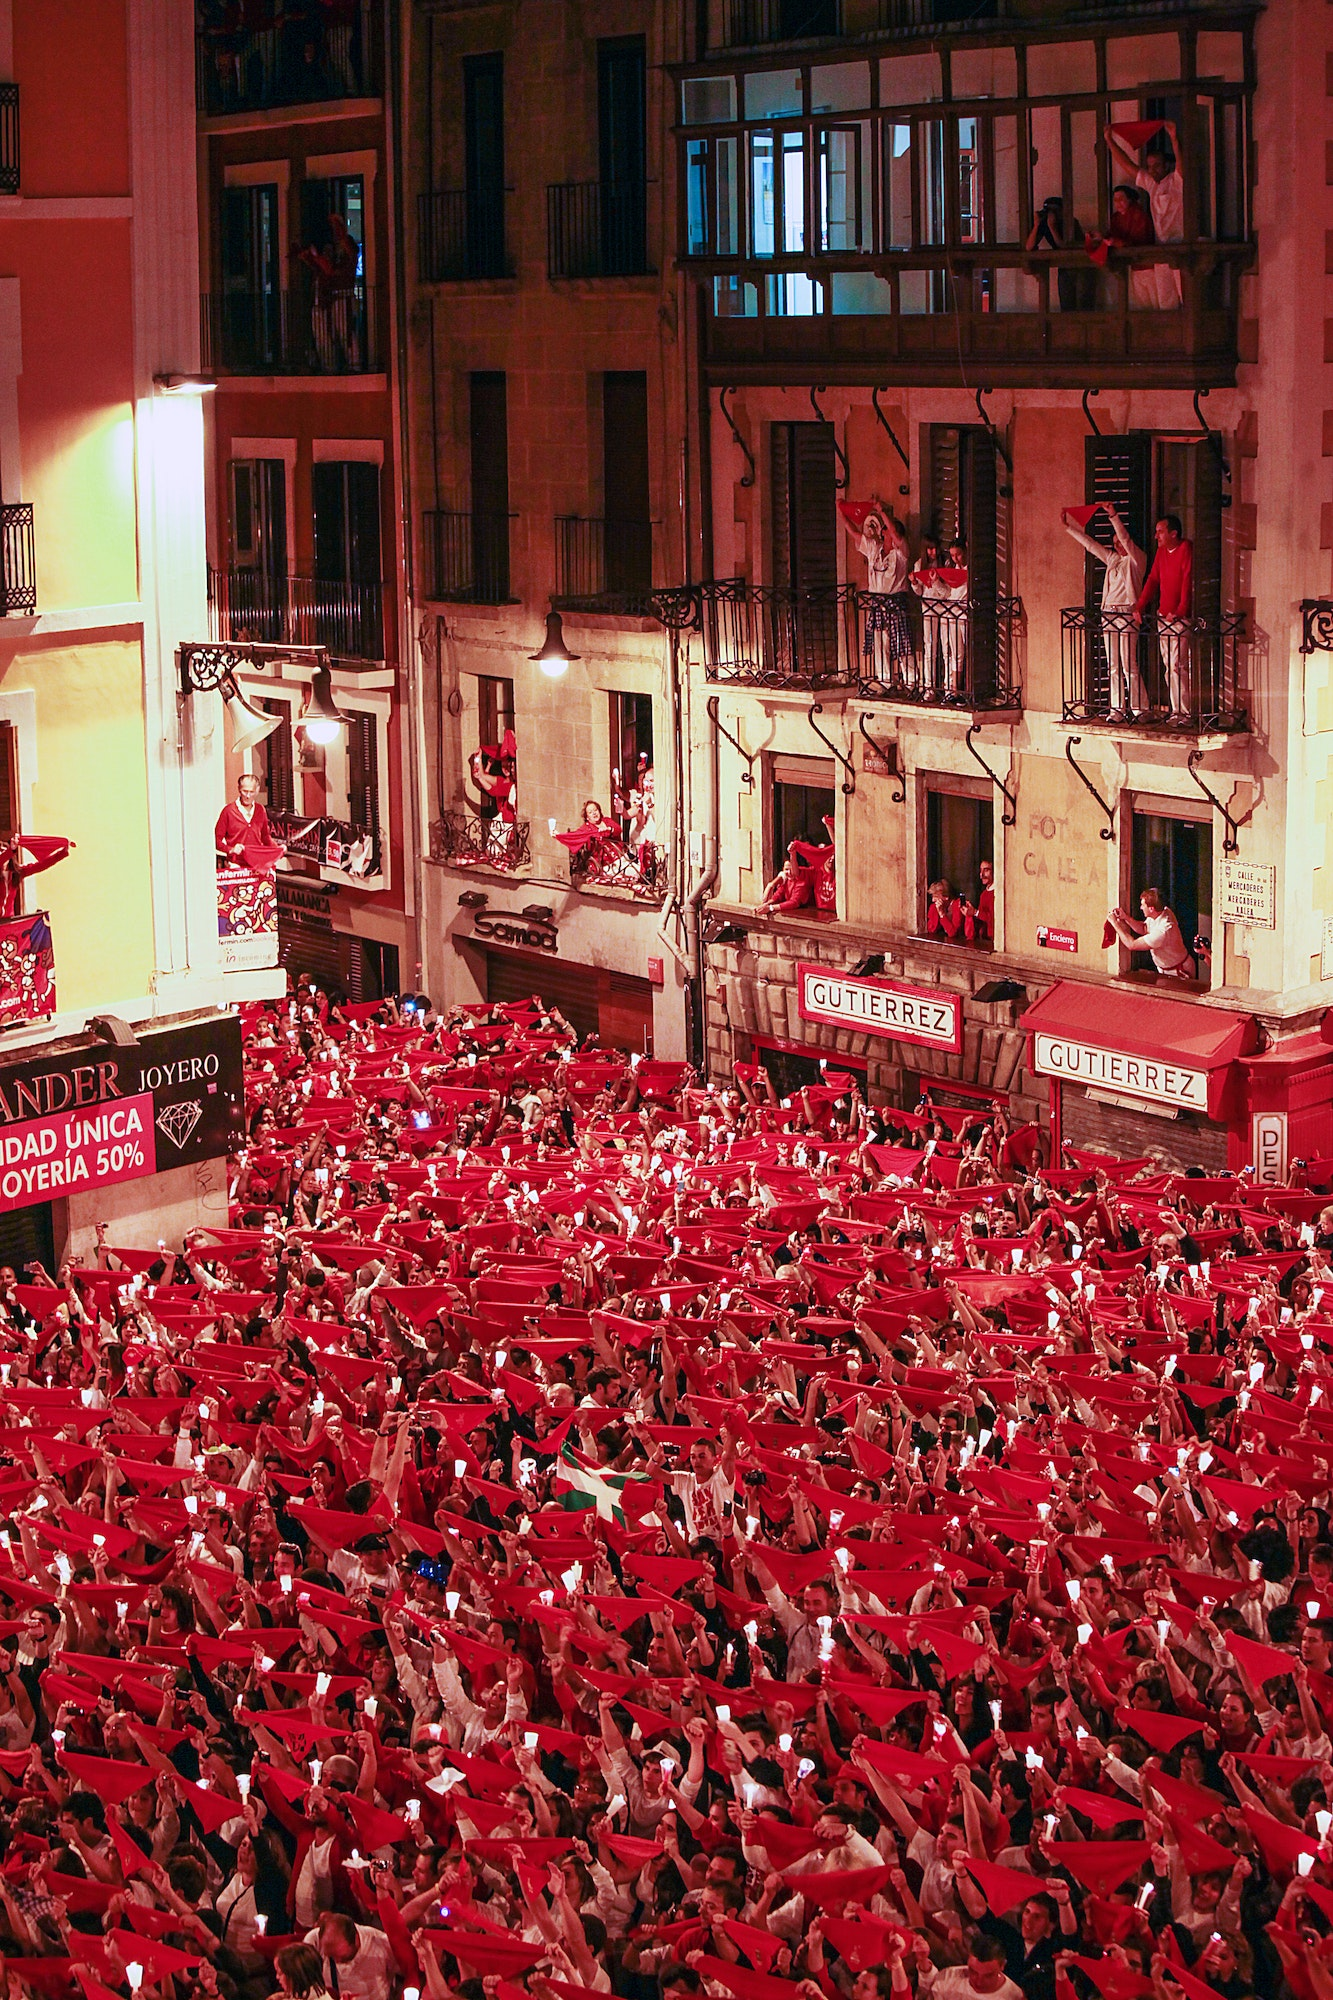 Tradition says festival-goers should only wear their red San Fermín scarves during the duration of the festival.